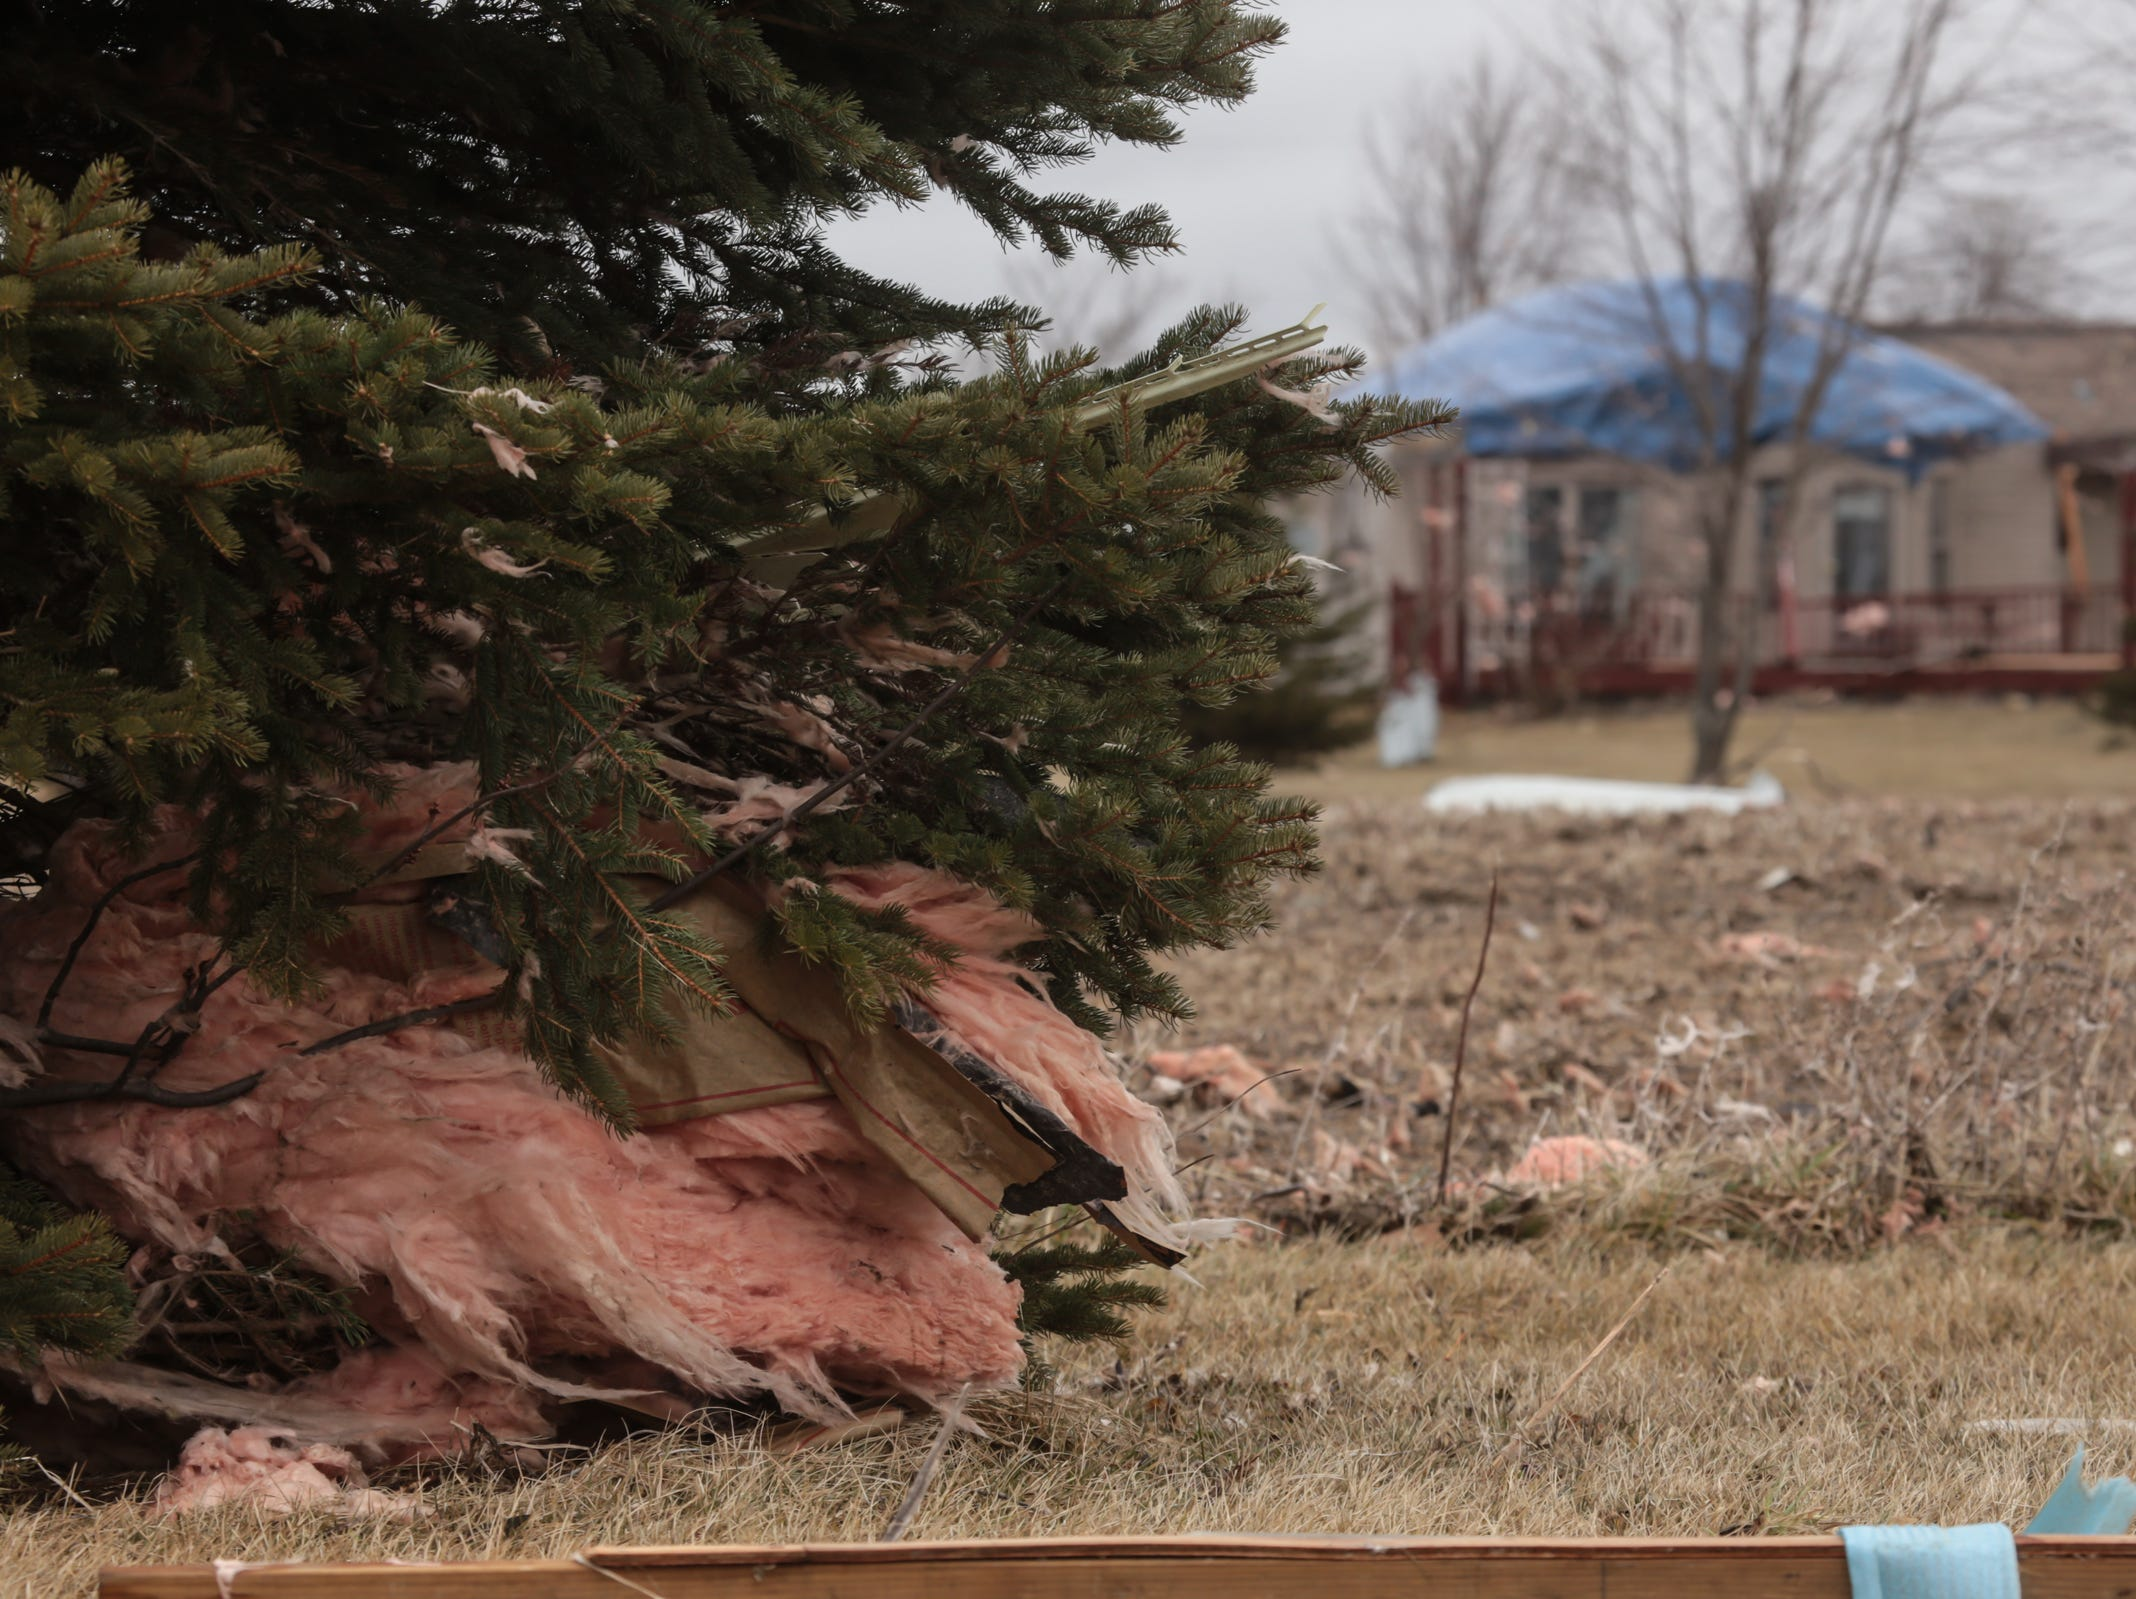 Insulation from a damaged home in Vernon is seen in trees on Friday, March 15, 2019 around a house that was damaged after a tornado came through Shiawassee County.